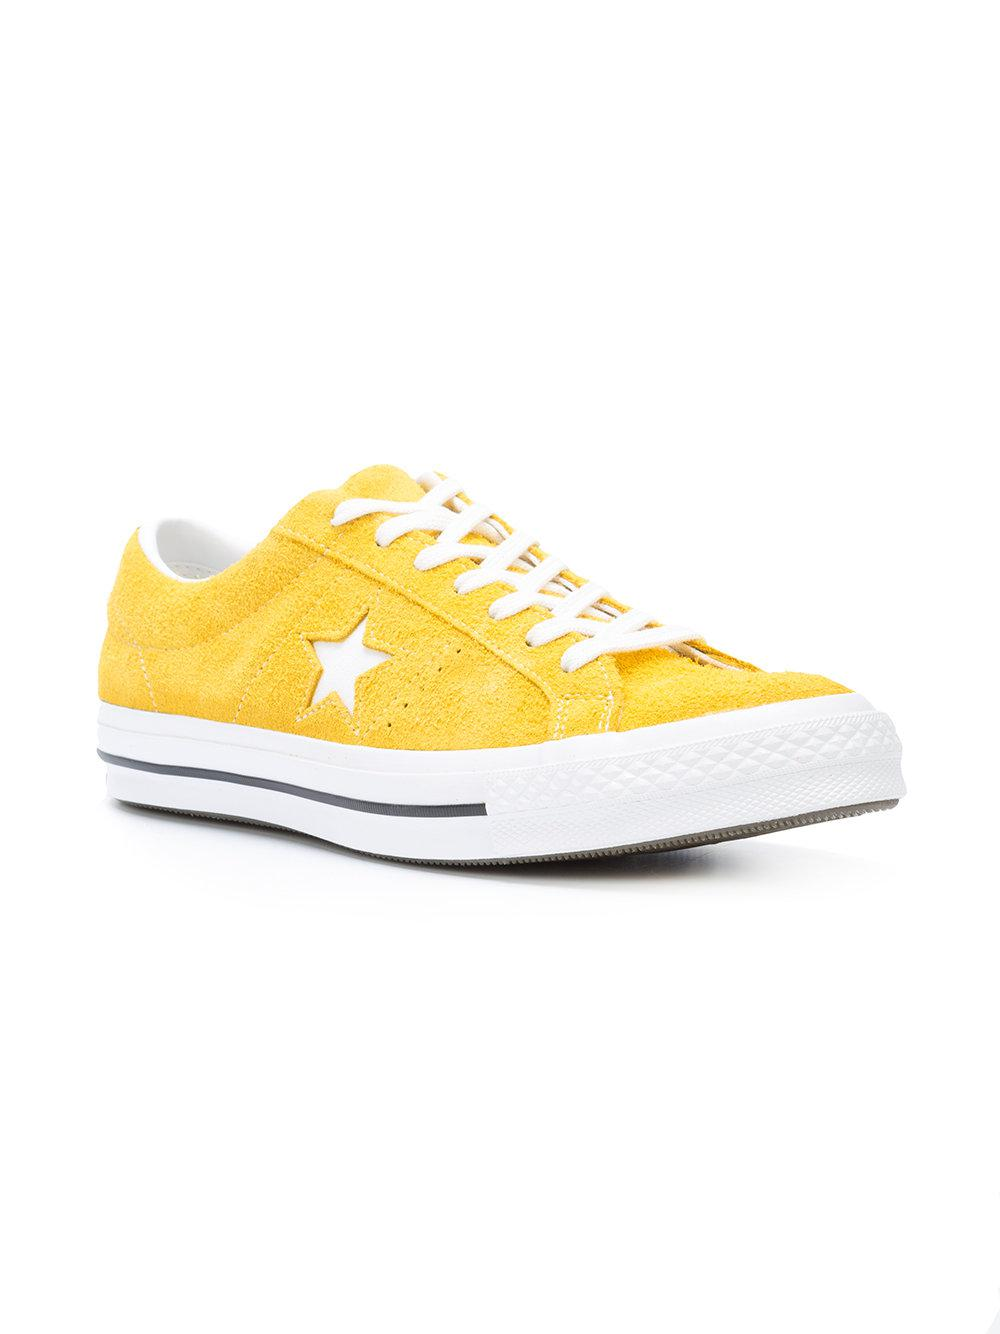 9c8d5e7f46b2 Lyst - Converse One Star Ox Sneakers in Yellow